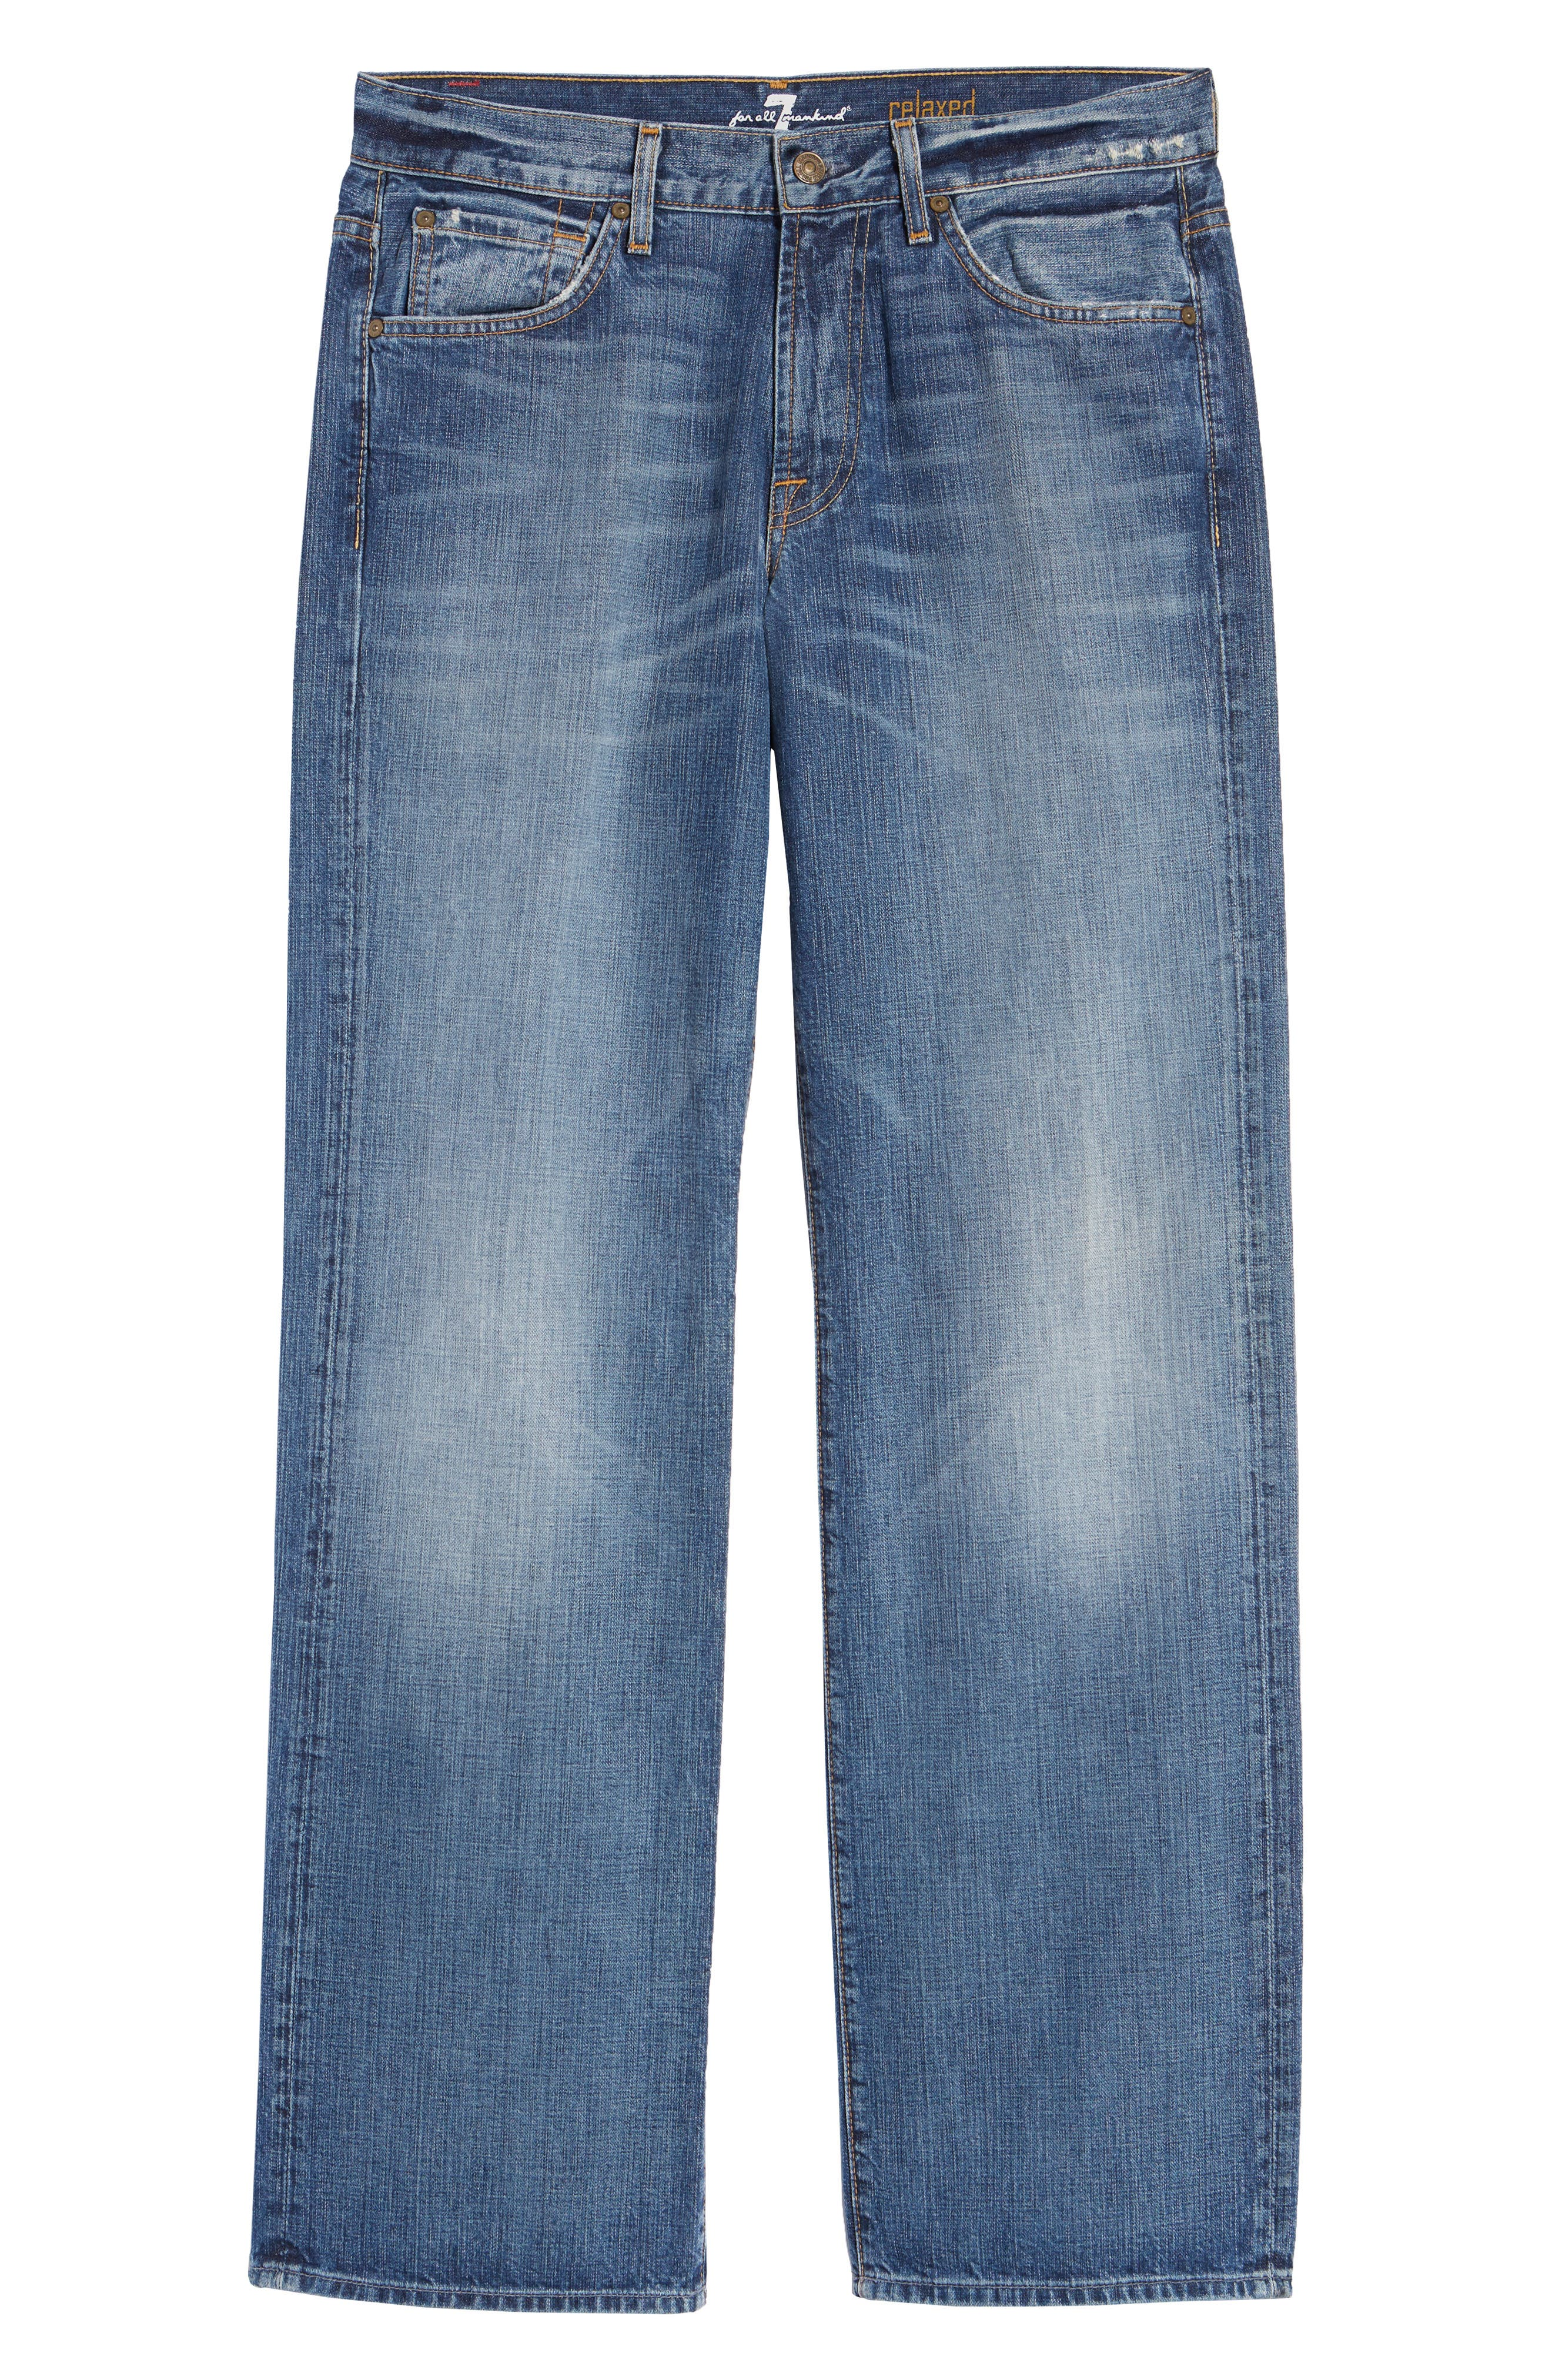 7 FOR ALL MANKIND<SUP>®</SUP>, Luxe Performance - Austyn Relaxed Straight Leg Jeans, Alternate thumbnail 2, color, NAKKITTA BLUE